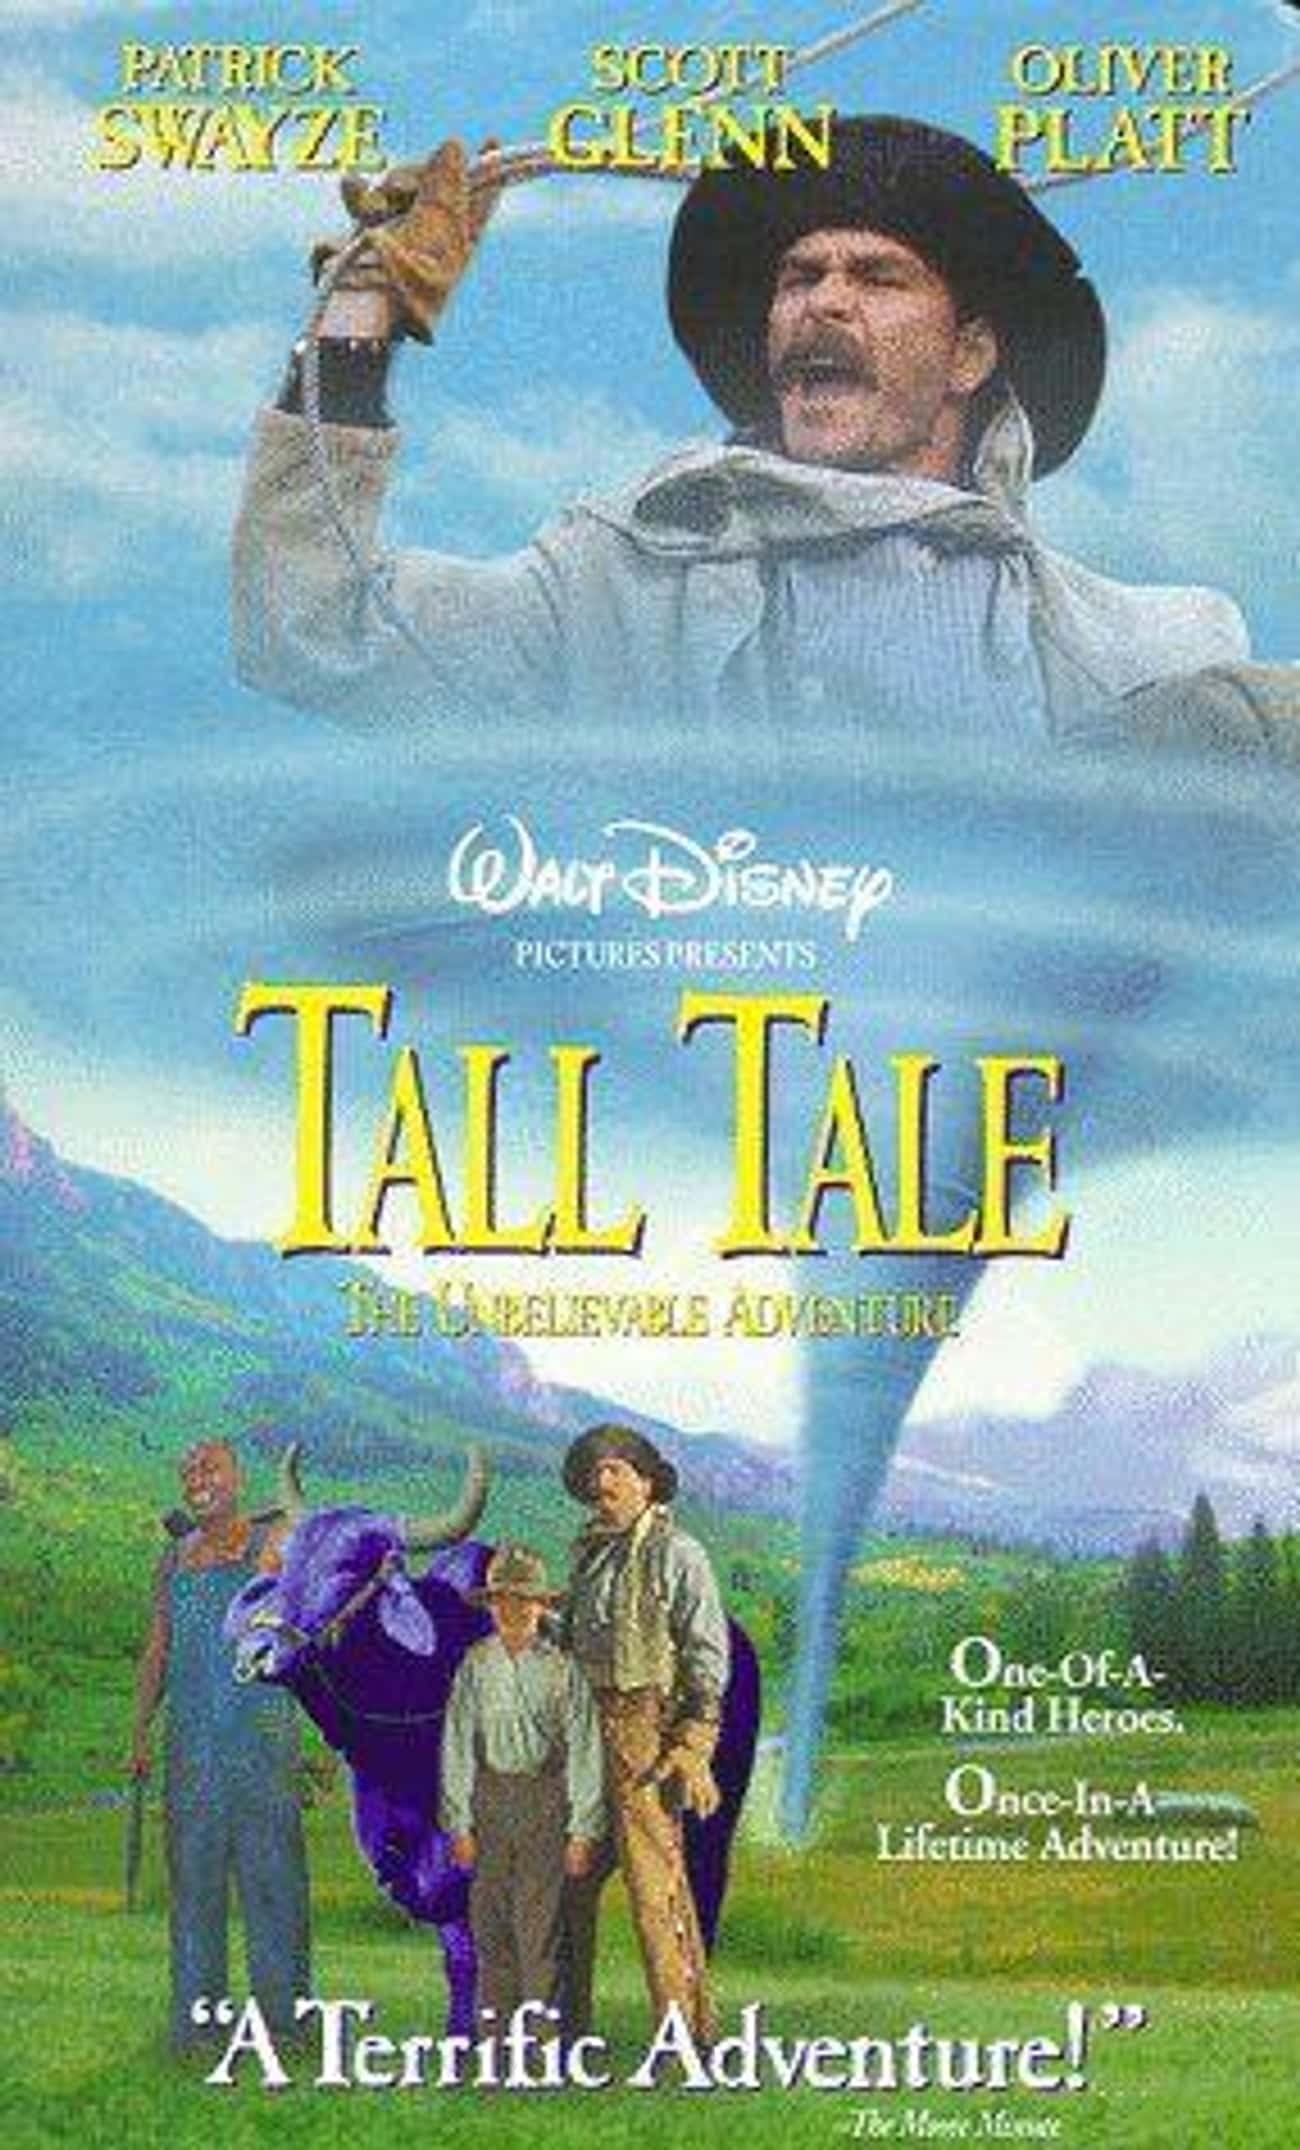 Tall Tale is listed (or ranked) 1 on the list 19 Forgotten Movies You Probably Didn't Realize Are On Disney+